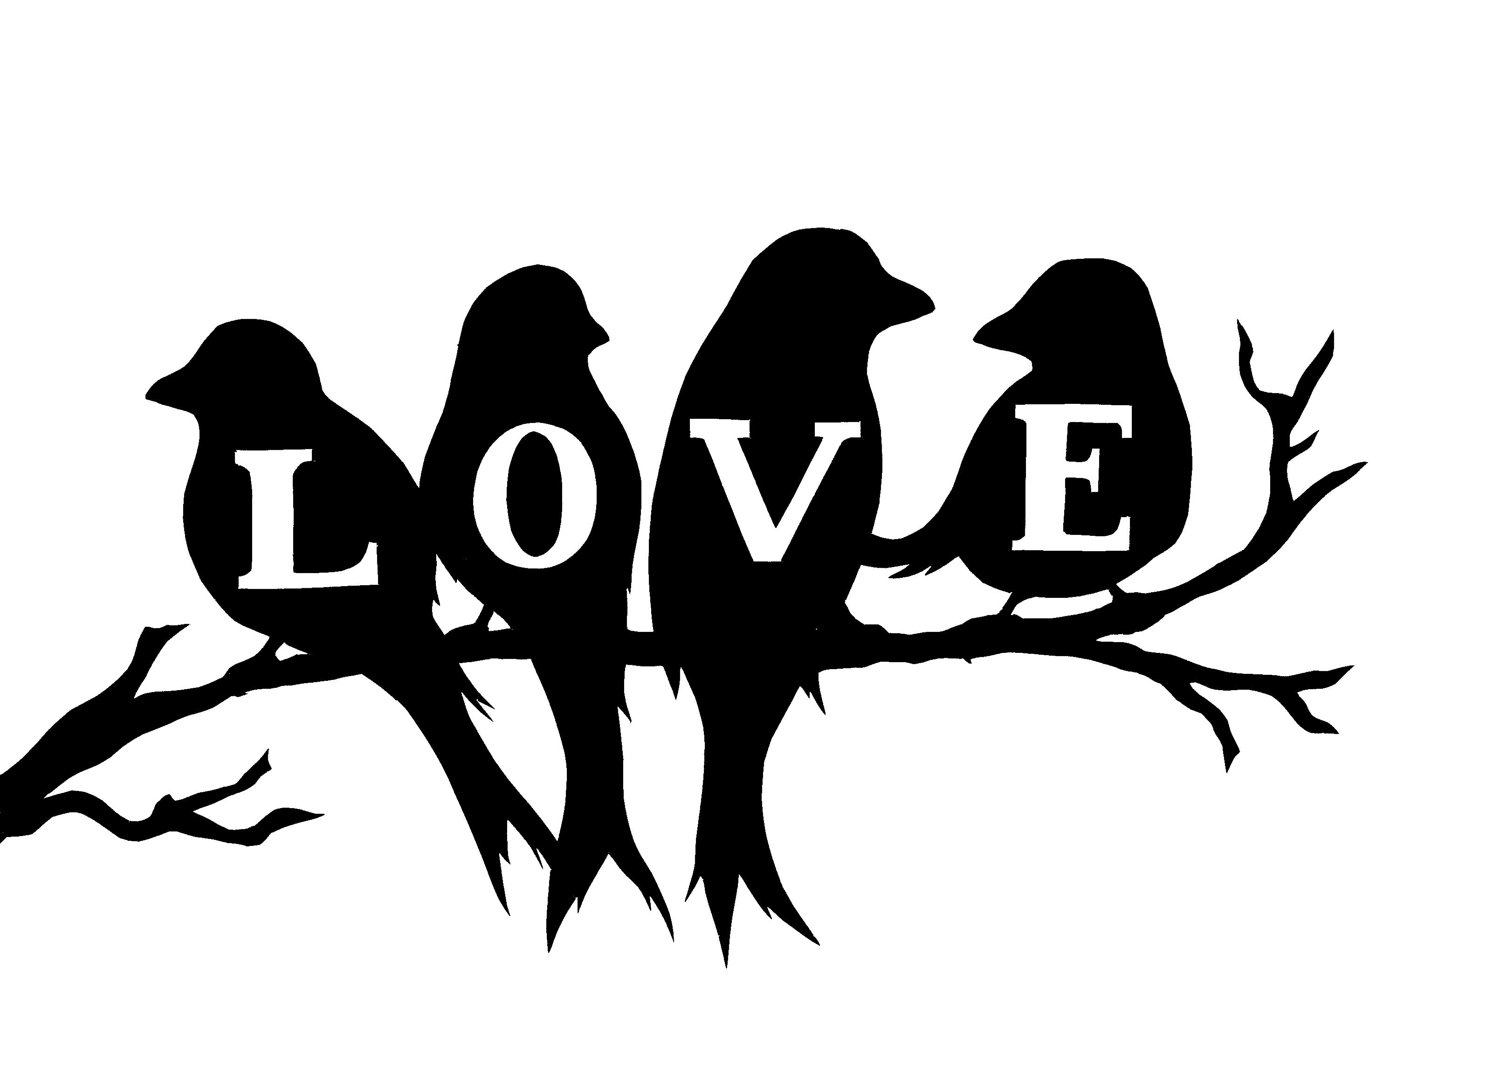 Love birds silhouette.